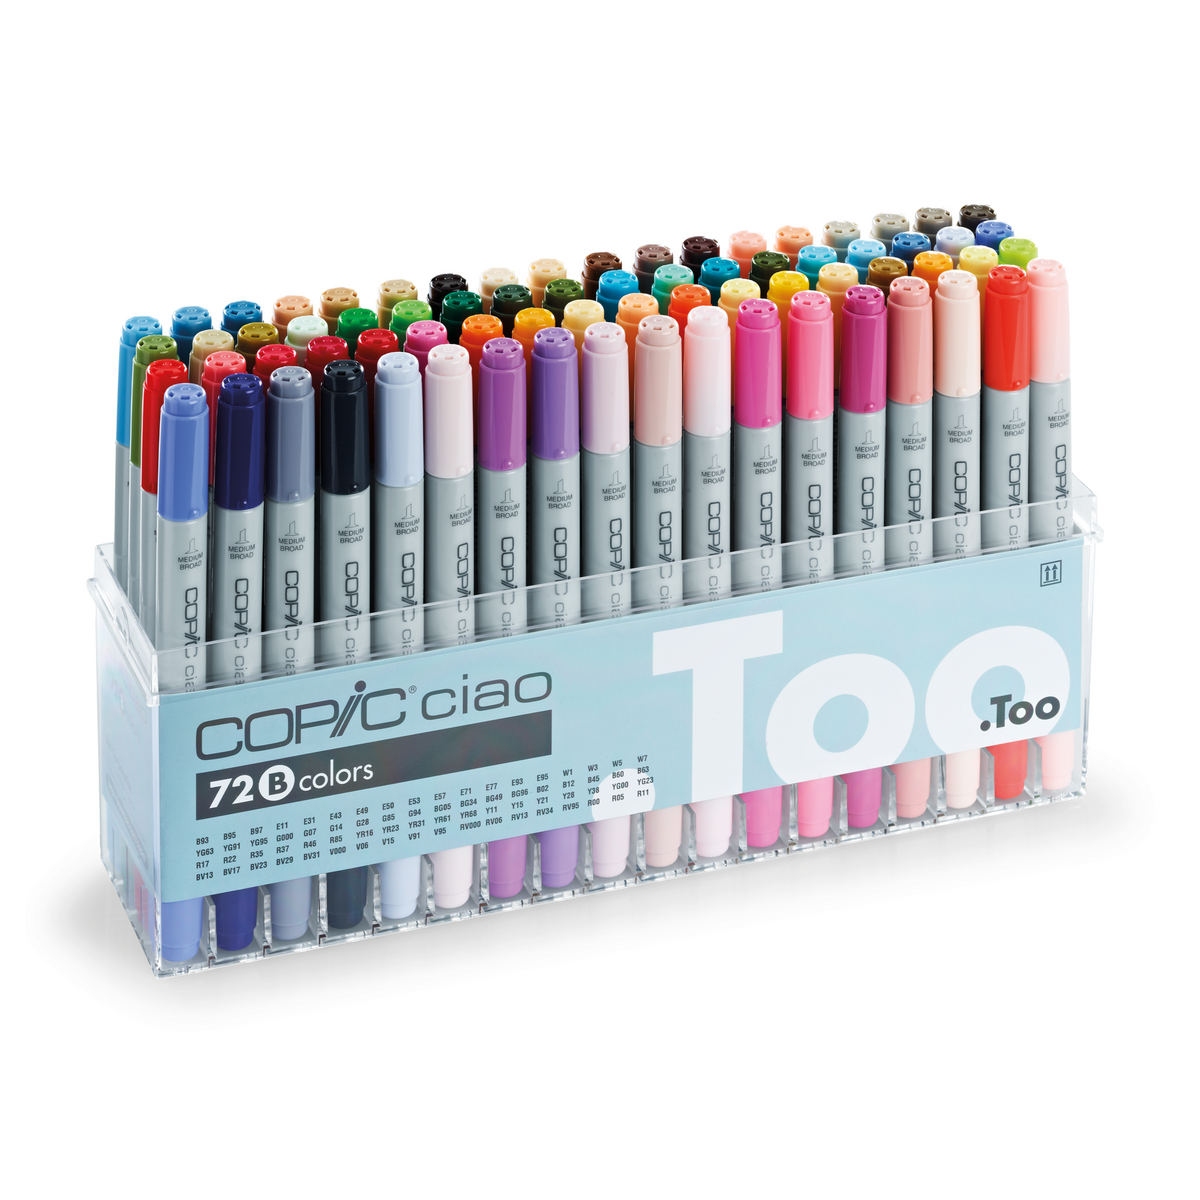 Copic ciao 72er Set B